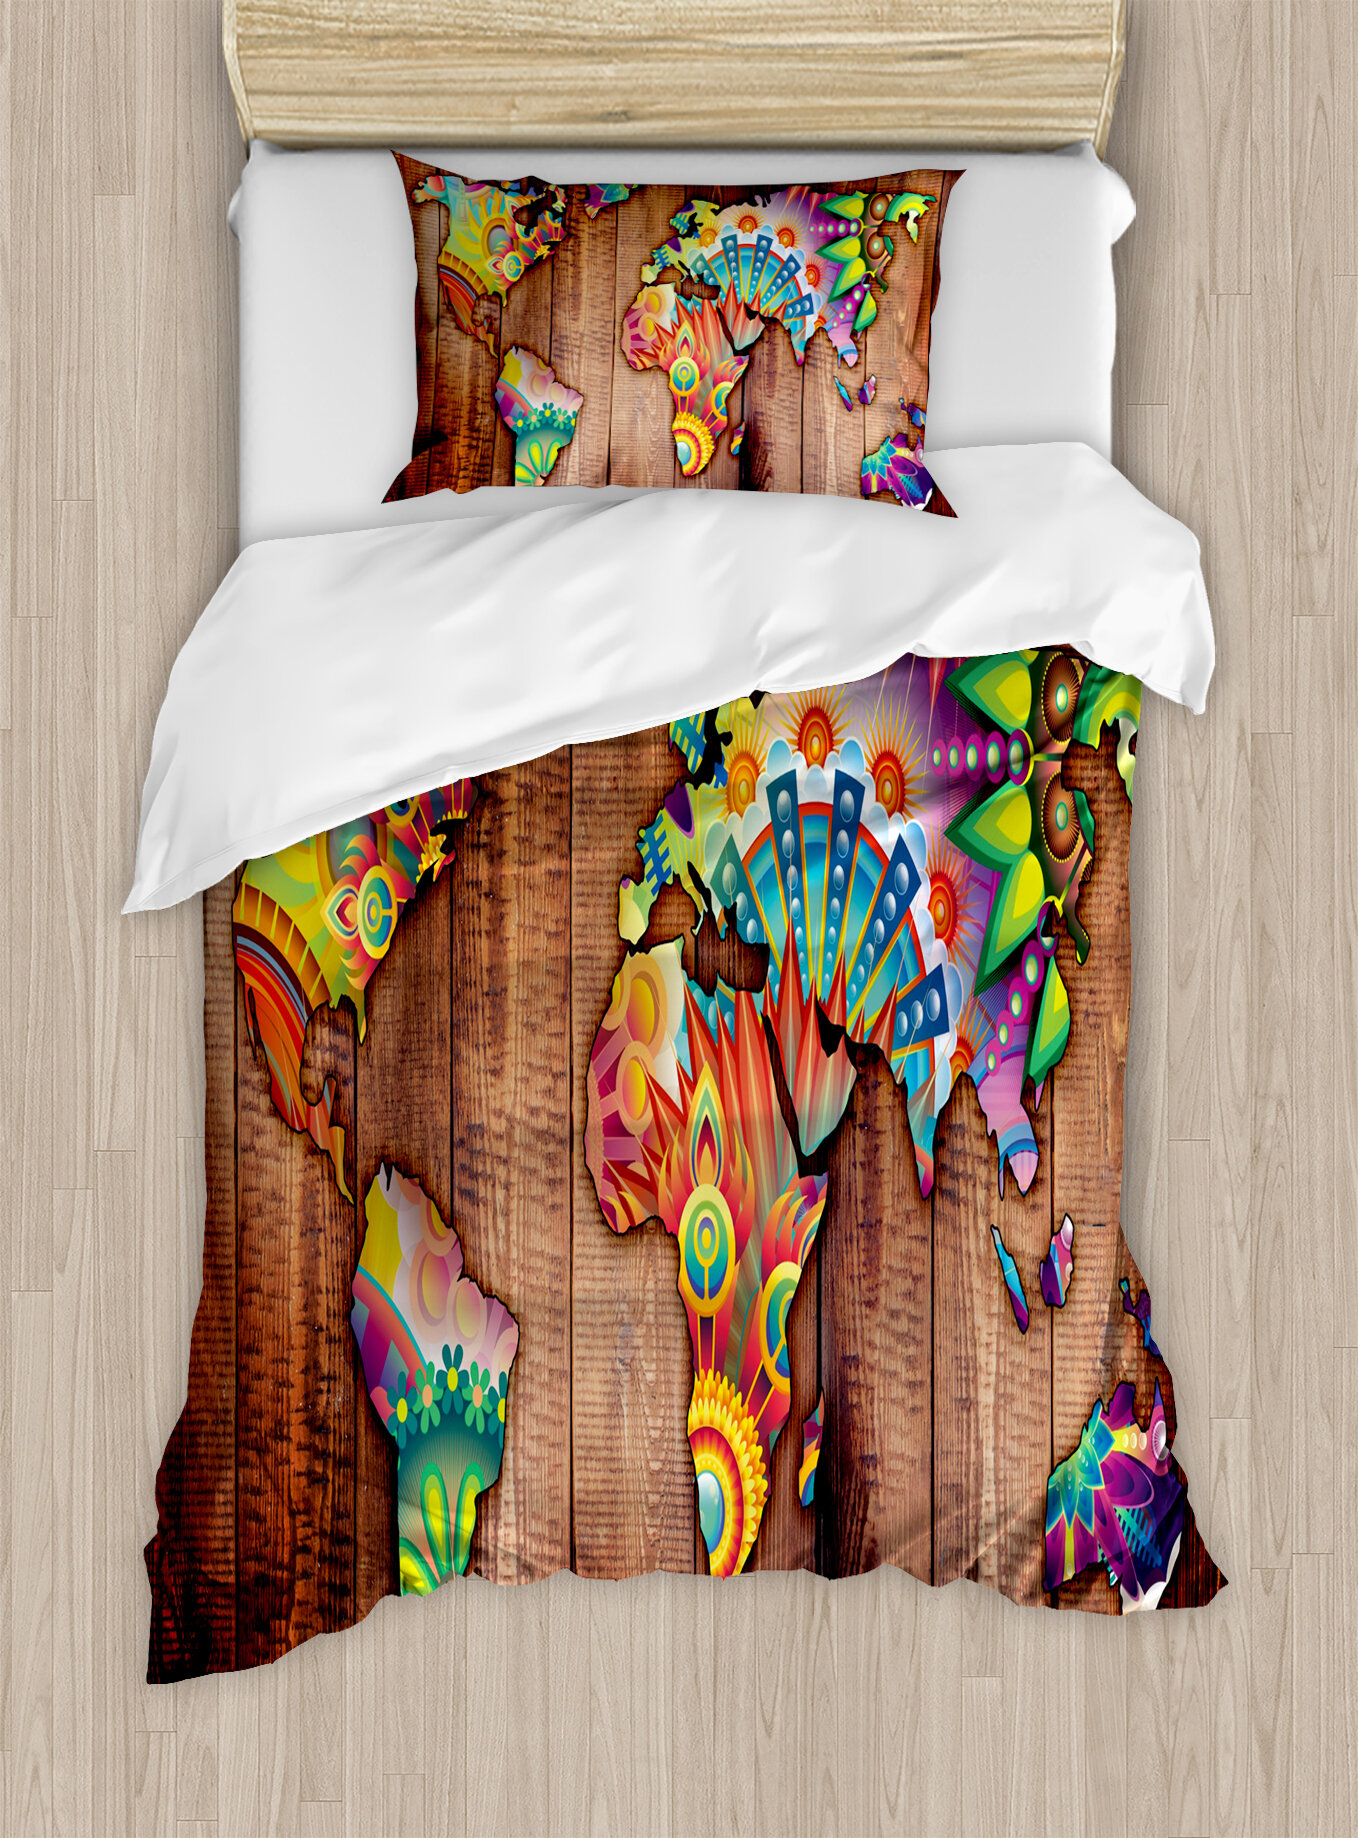 Bohemian World Map on Wooden Rustic Planks Background Creative Abstract  Countries Print Duvet Cover Set